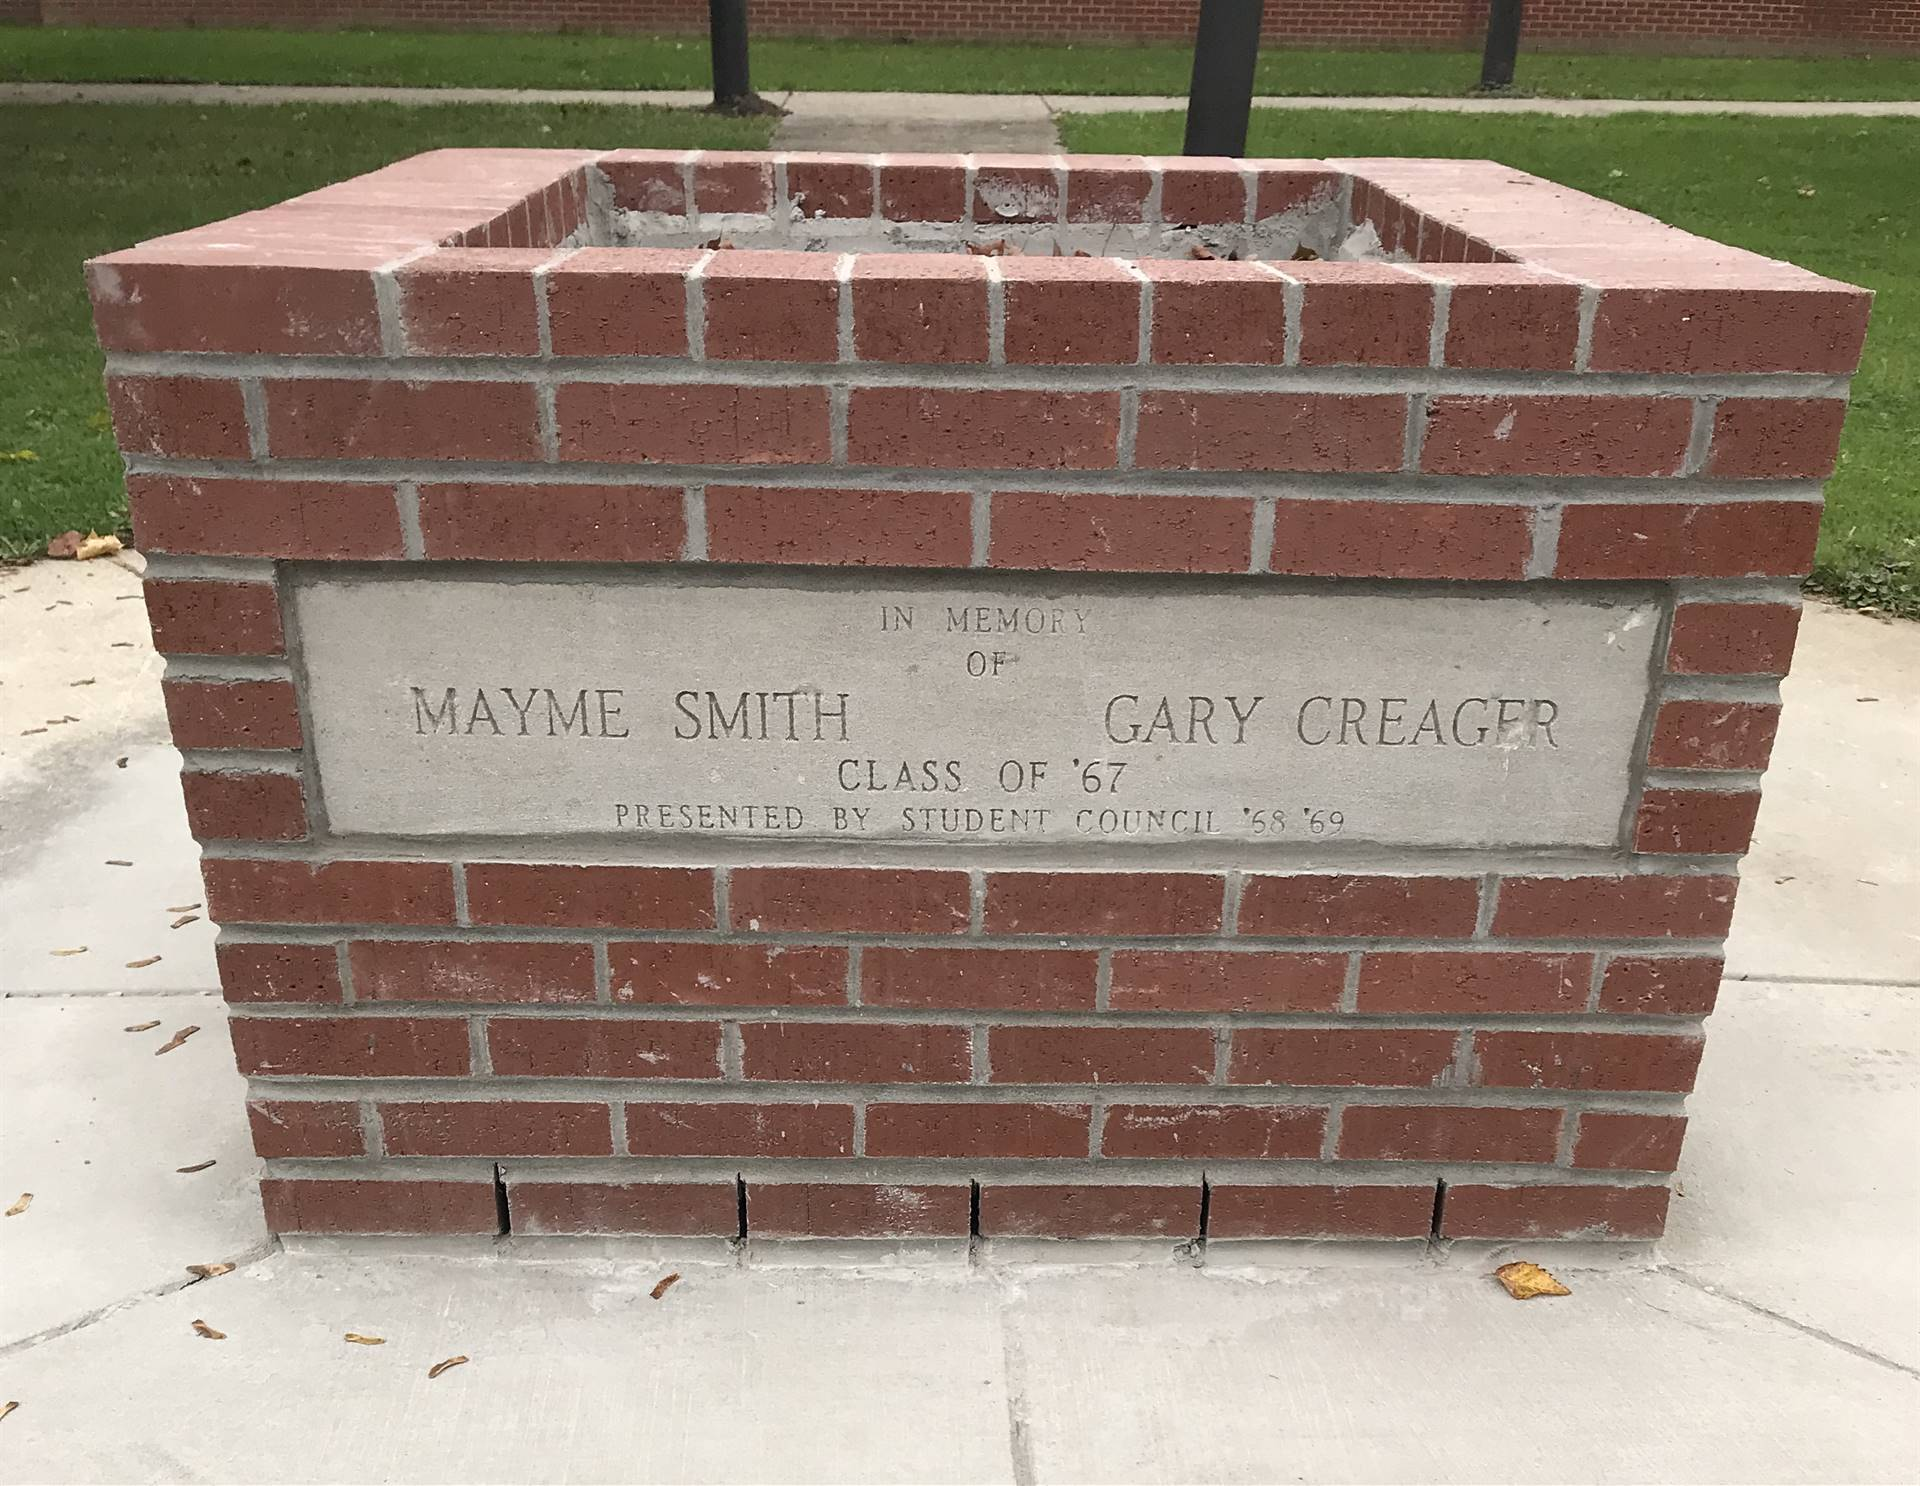 Thank you Dale Shafer for restoring the brick planter that memorializes former students